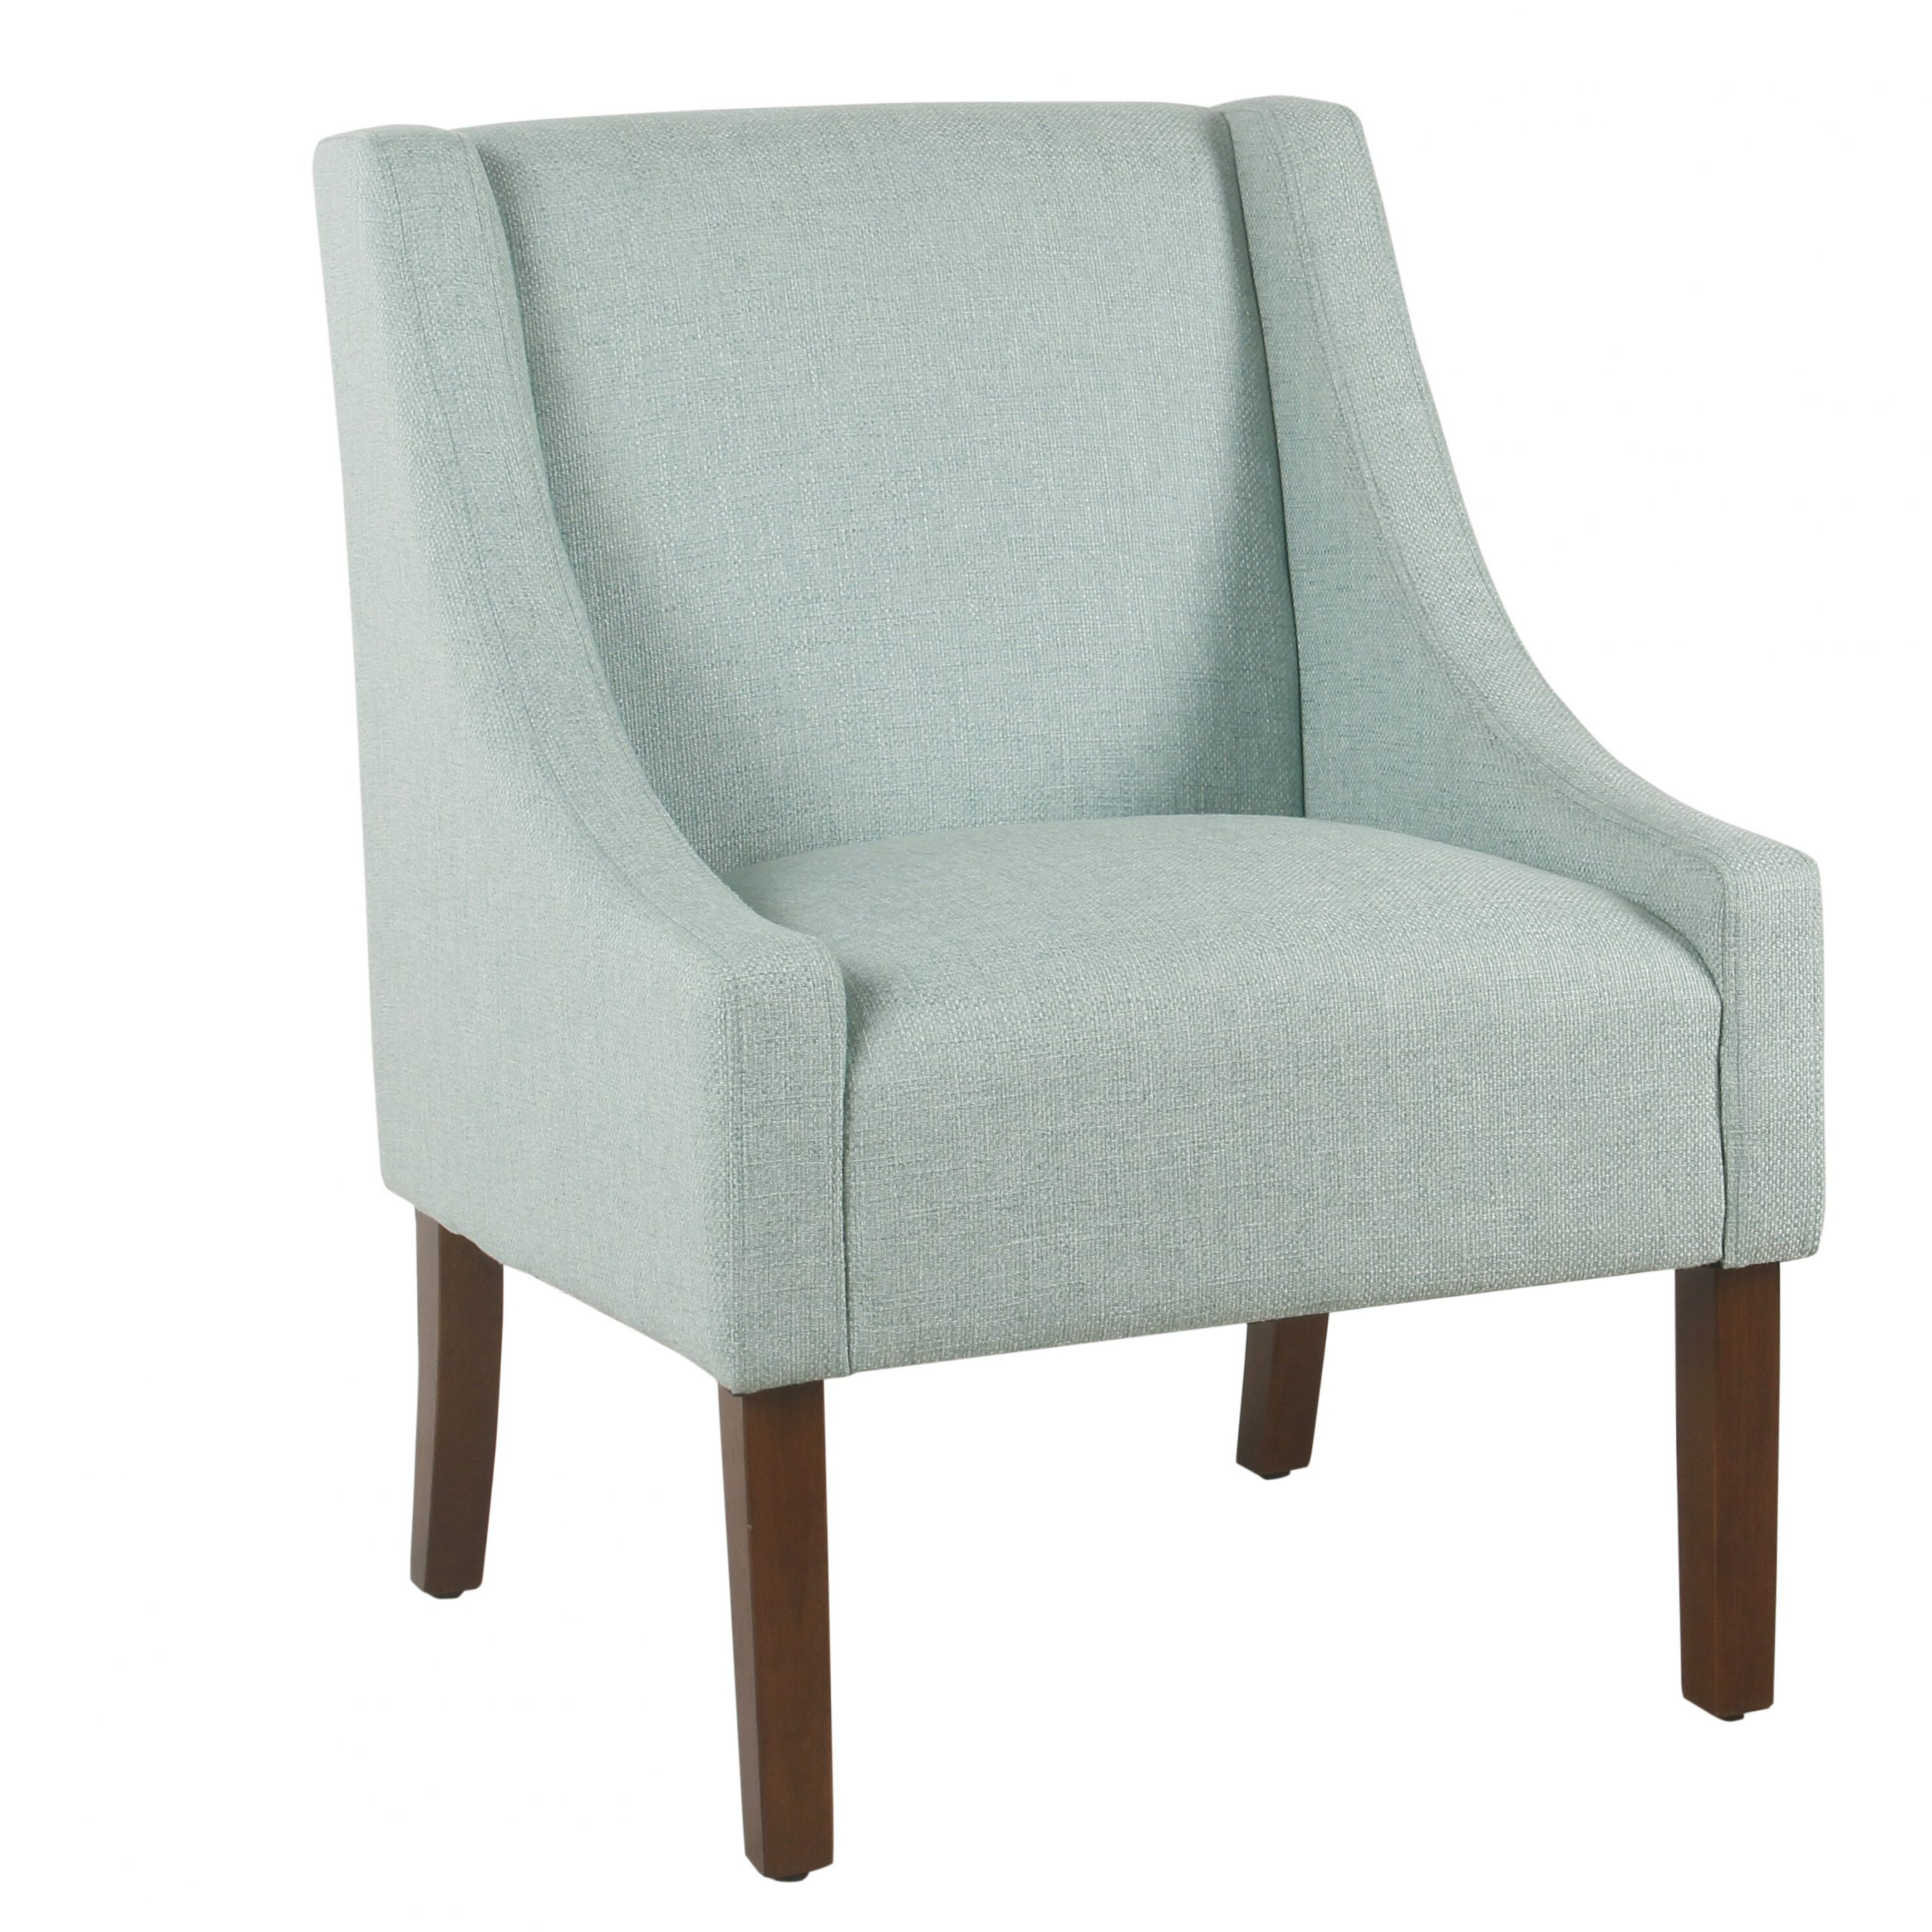 Myia Armchair With Regard To Myia Armchairs (View 2 of 15)